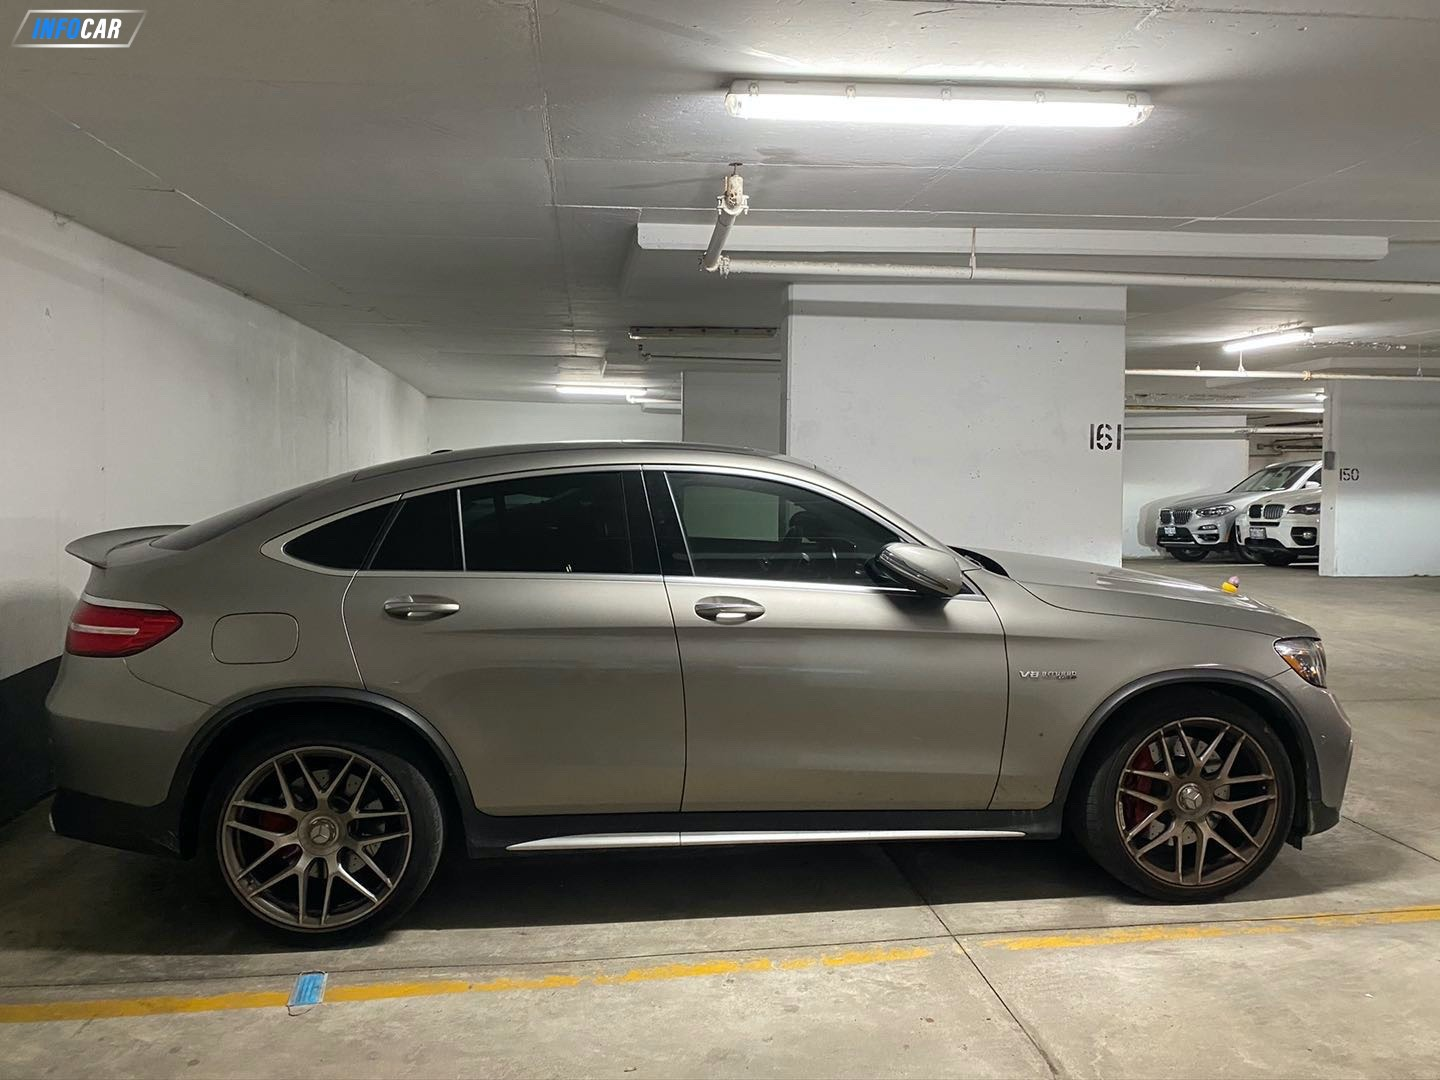 2019 Mercedes-Benz GLC-Class 63s - INFOCAR - Toronto's Most Comprehensive New and Used Auto Trading Platform